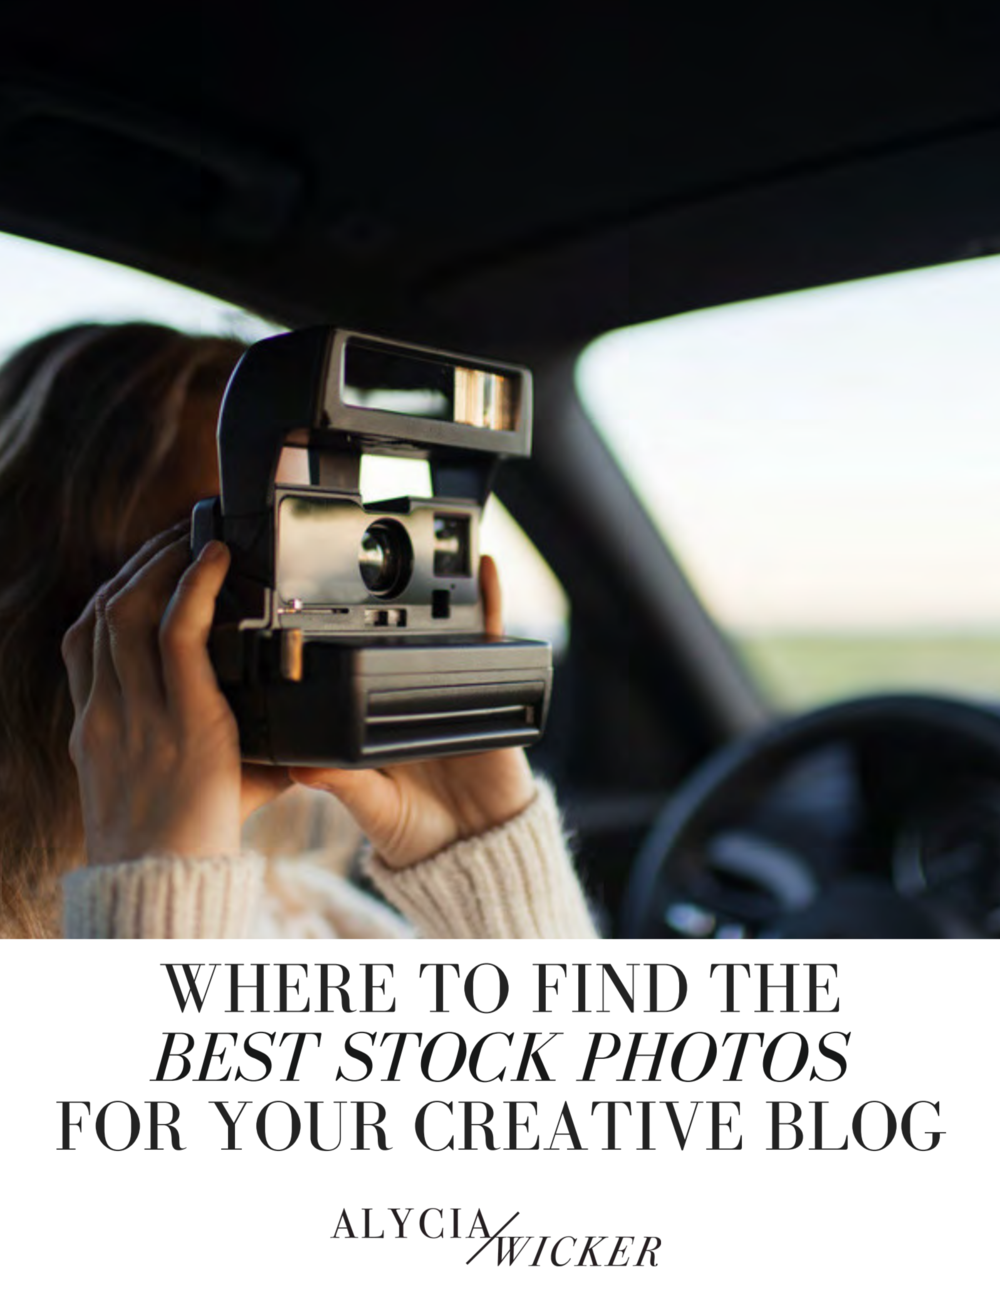 where-to-find-the-best-stock-photos.png